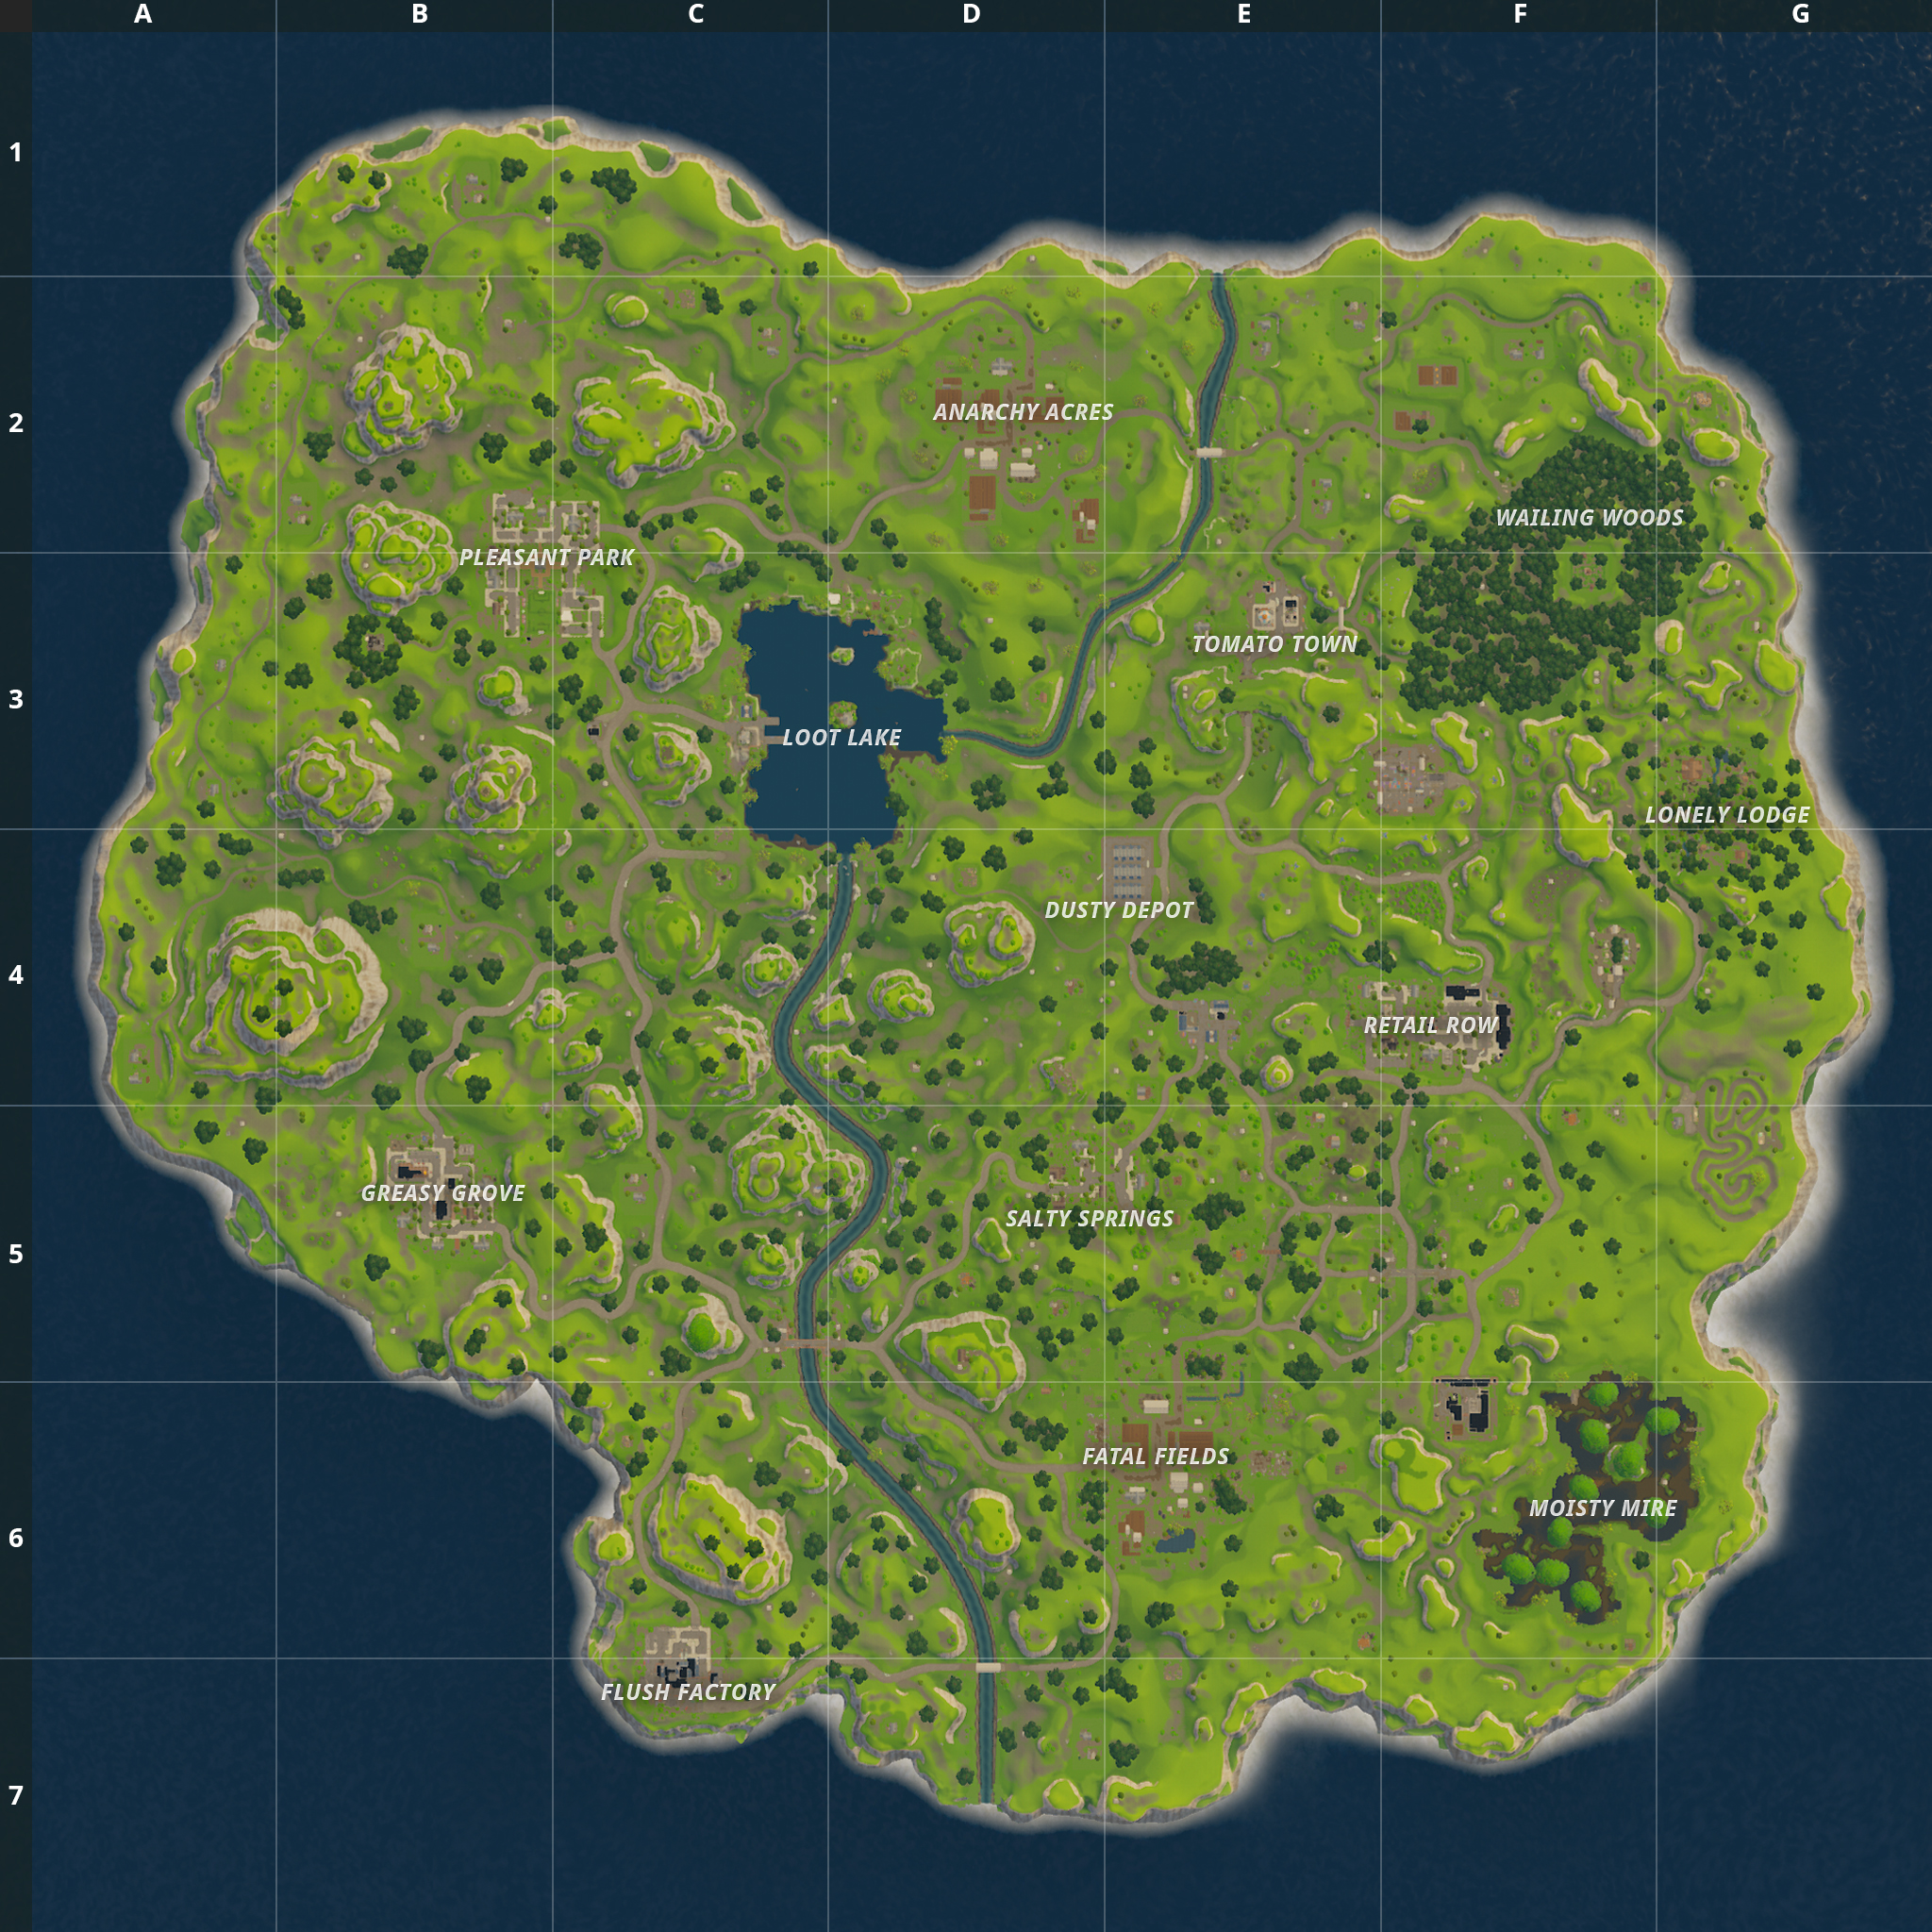 Fortnite%2Fblog%2F1-7-1-patch-notes%2FMiniMapAthena-2048x2048-257033270bfbd1f8bd239d3fc98dd2a6438e85e4